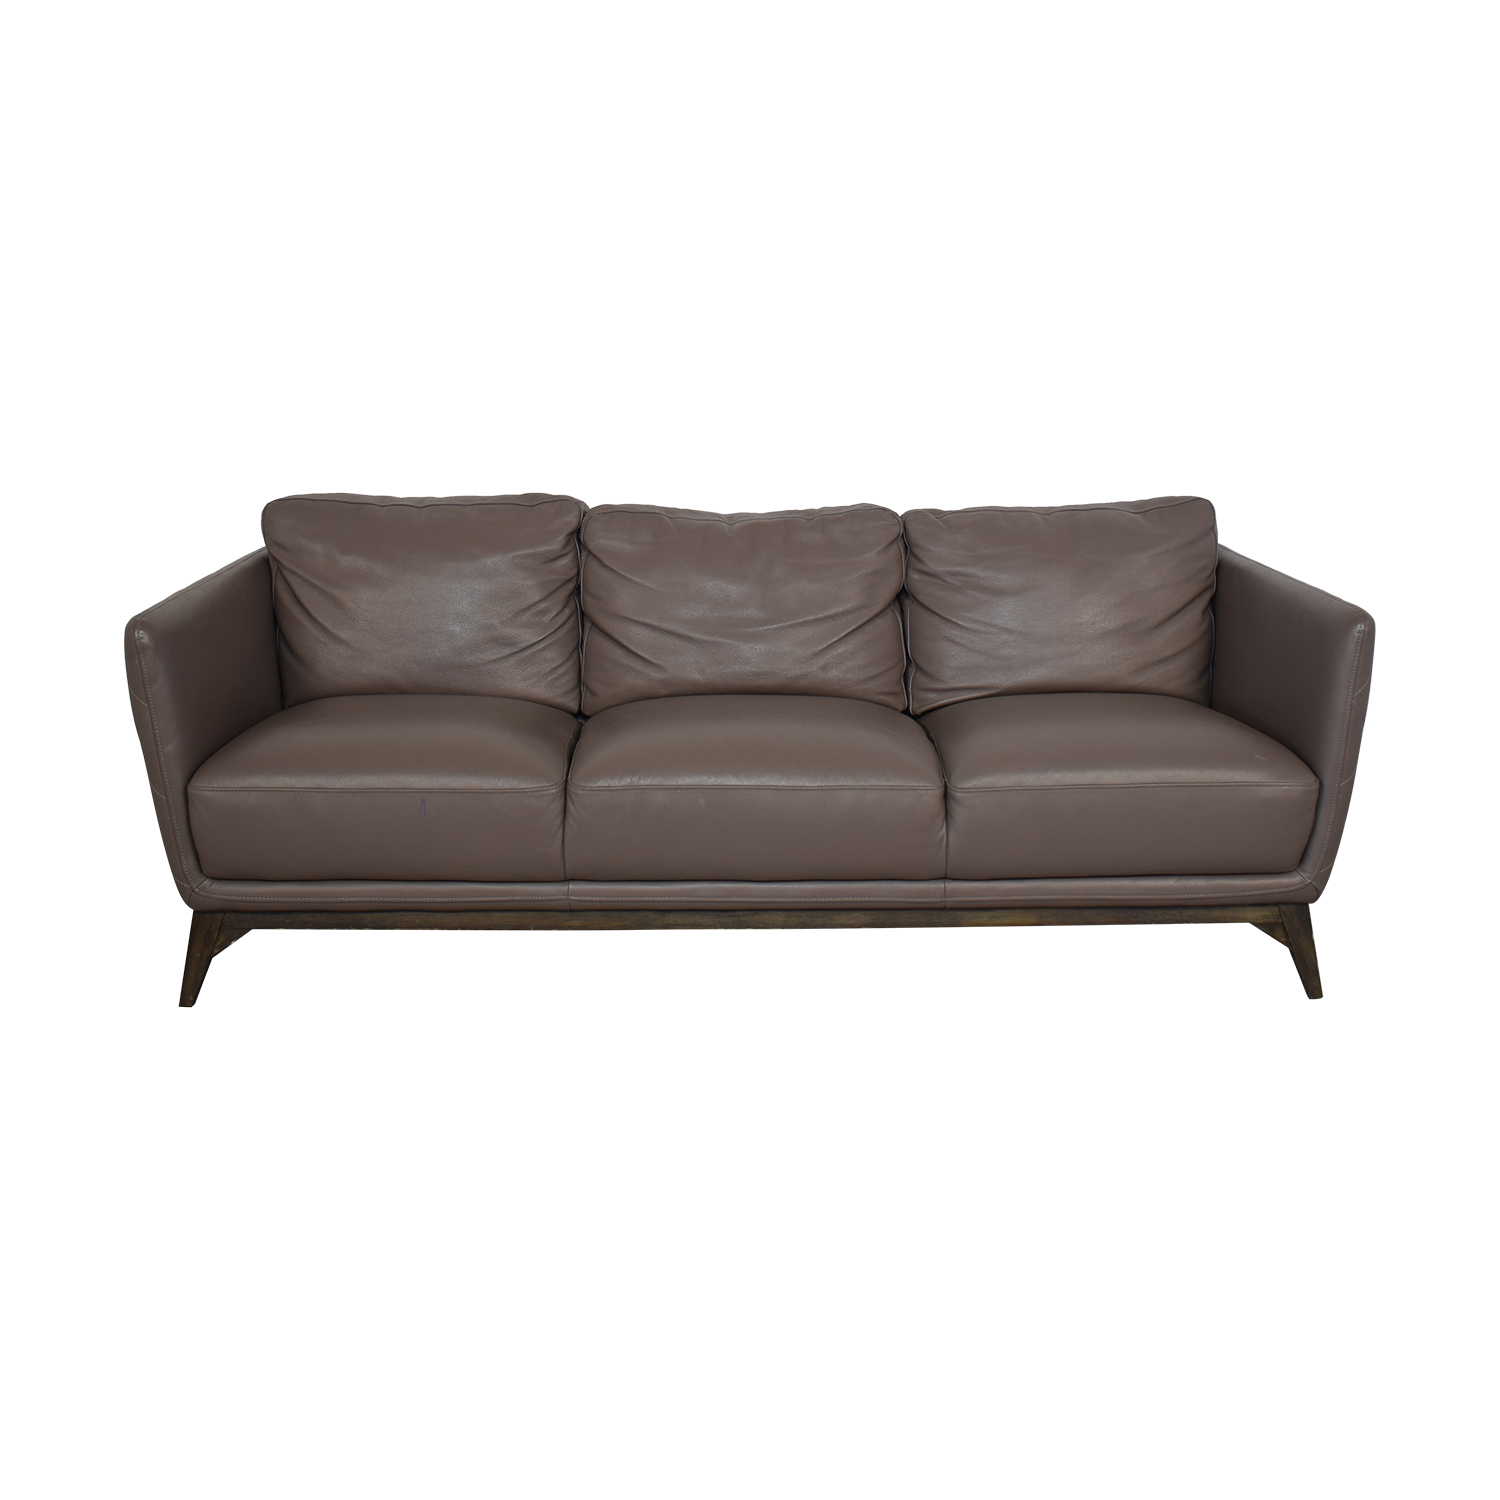 Macy's Macy's Mid Century Sofa for sale